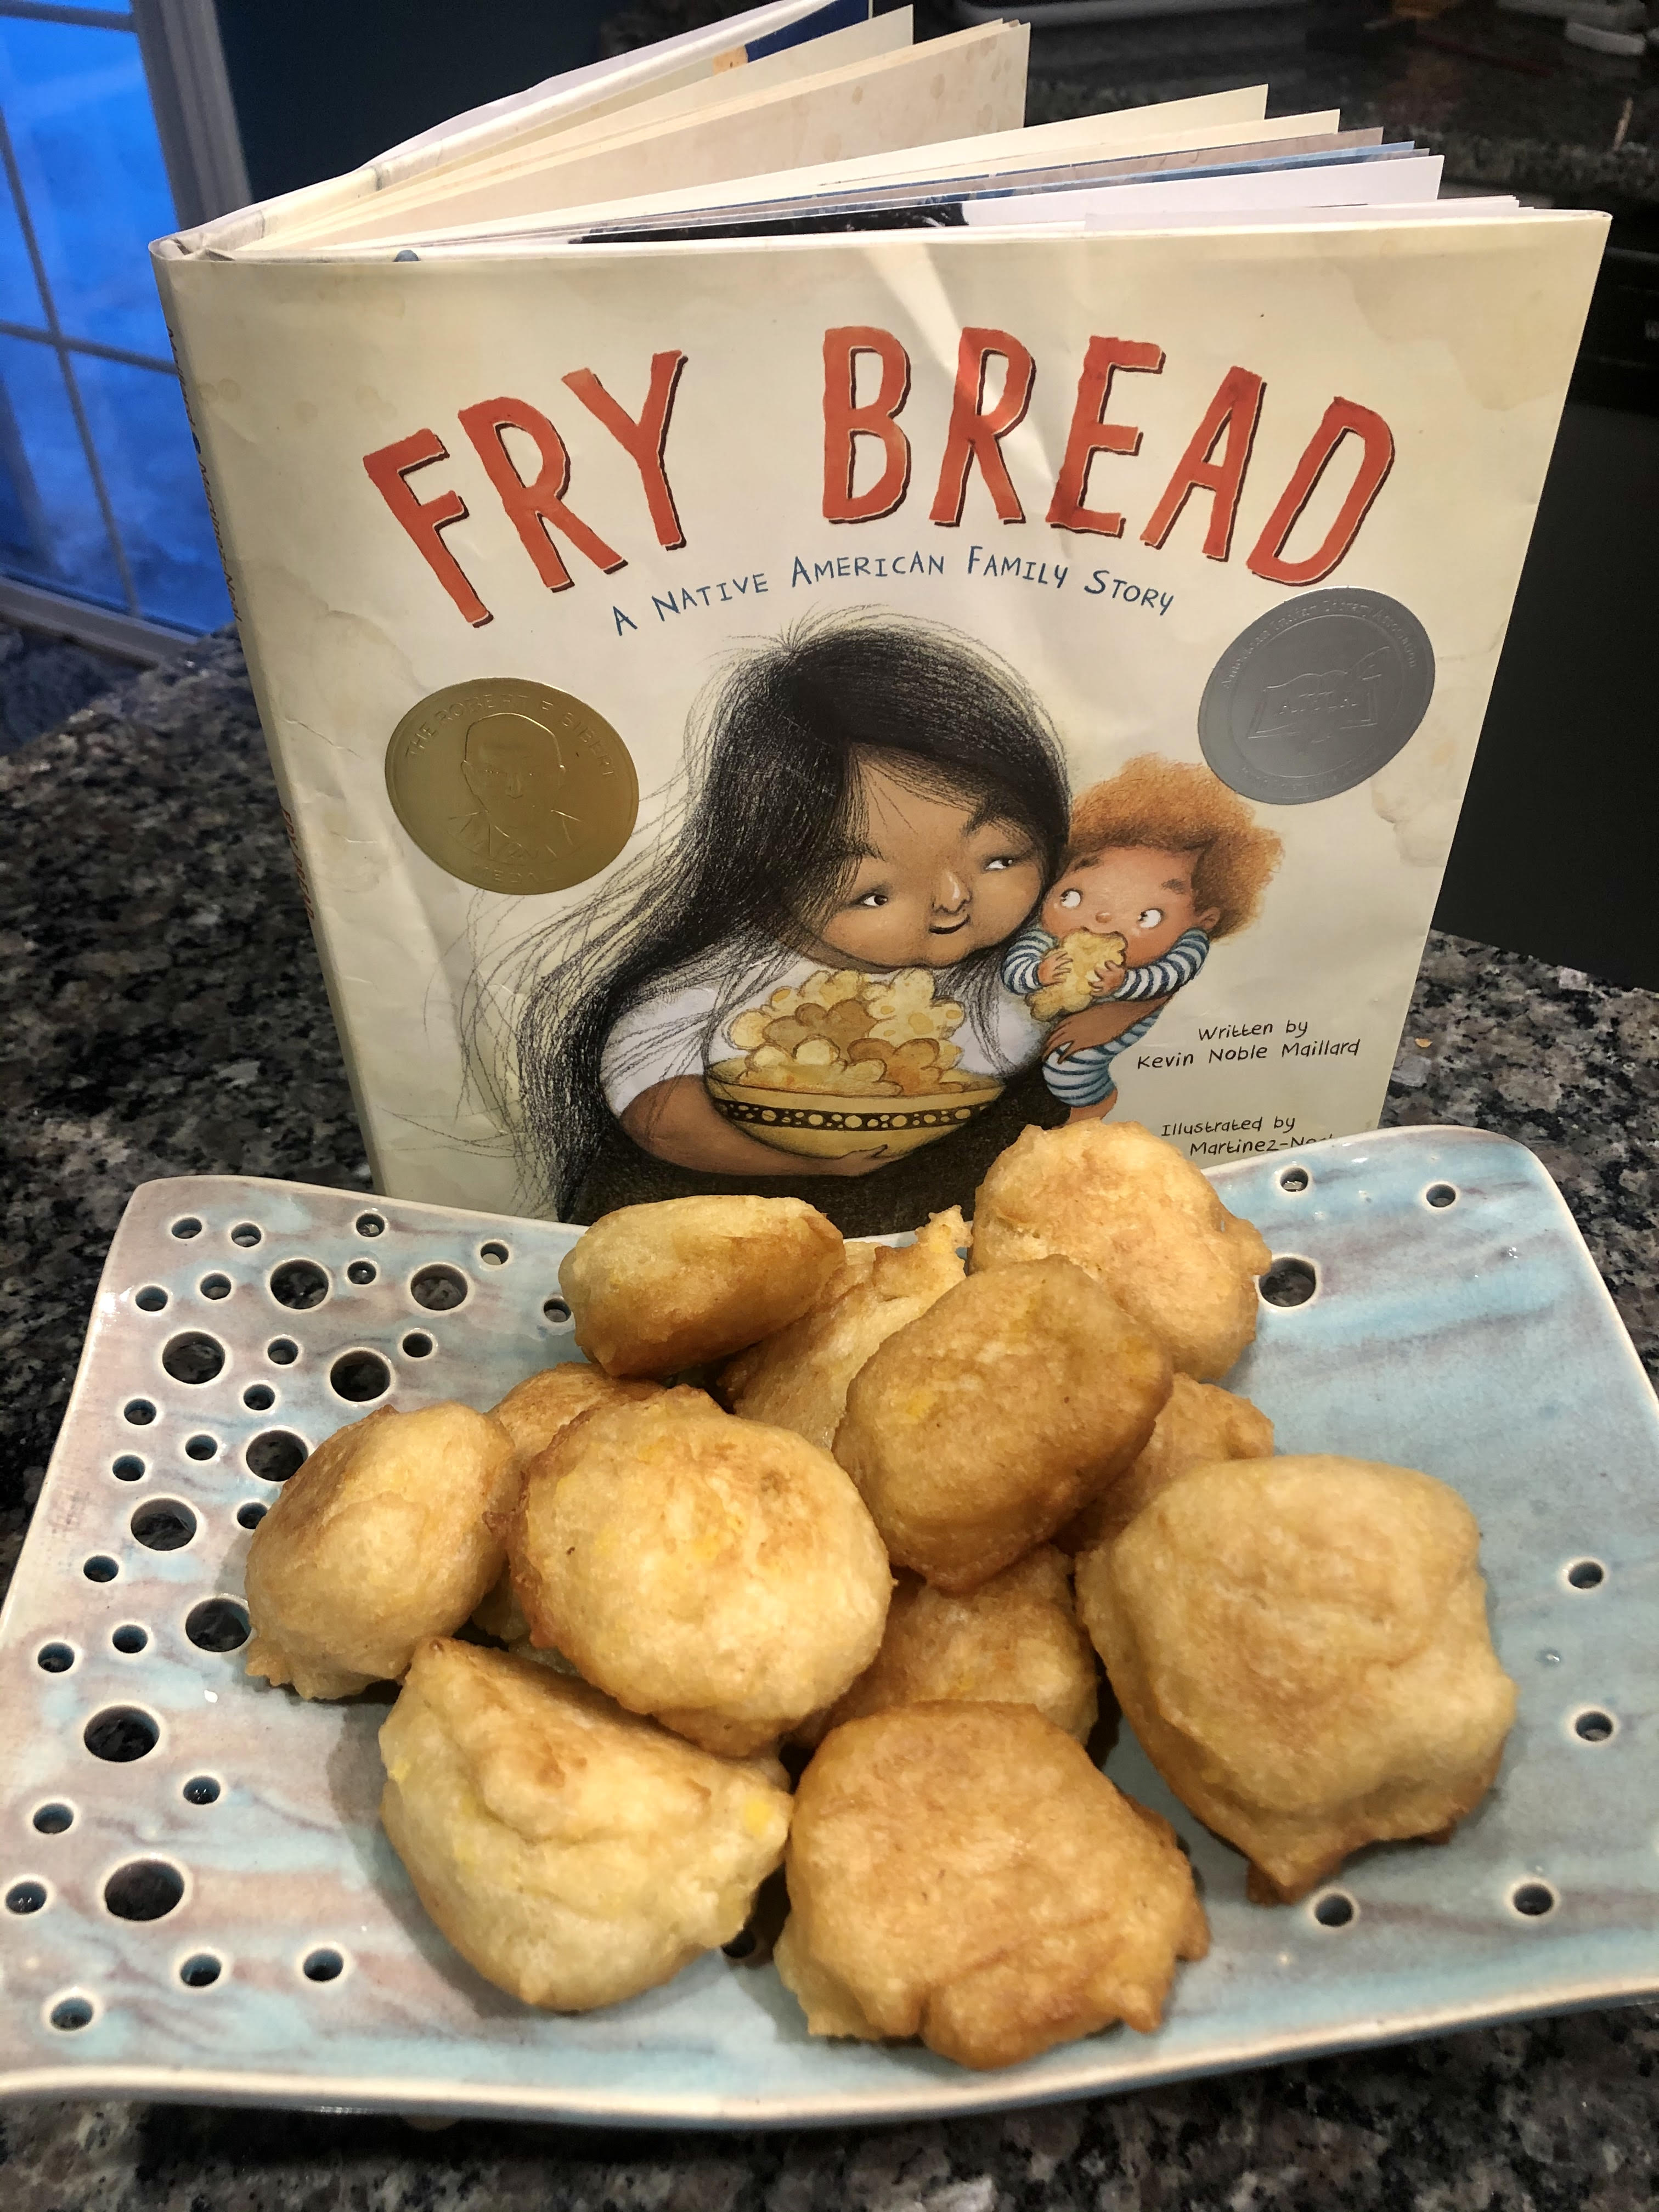 cooked fry bread on tray in front of Fry bread children's book